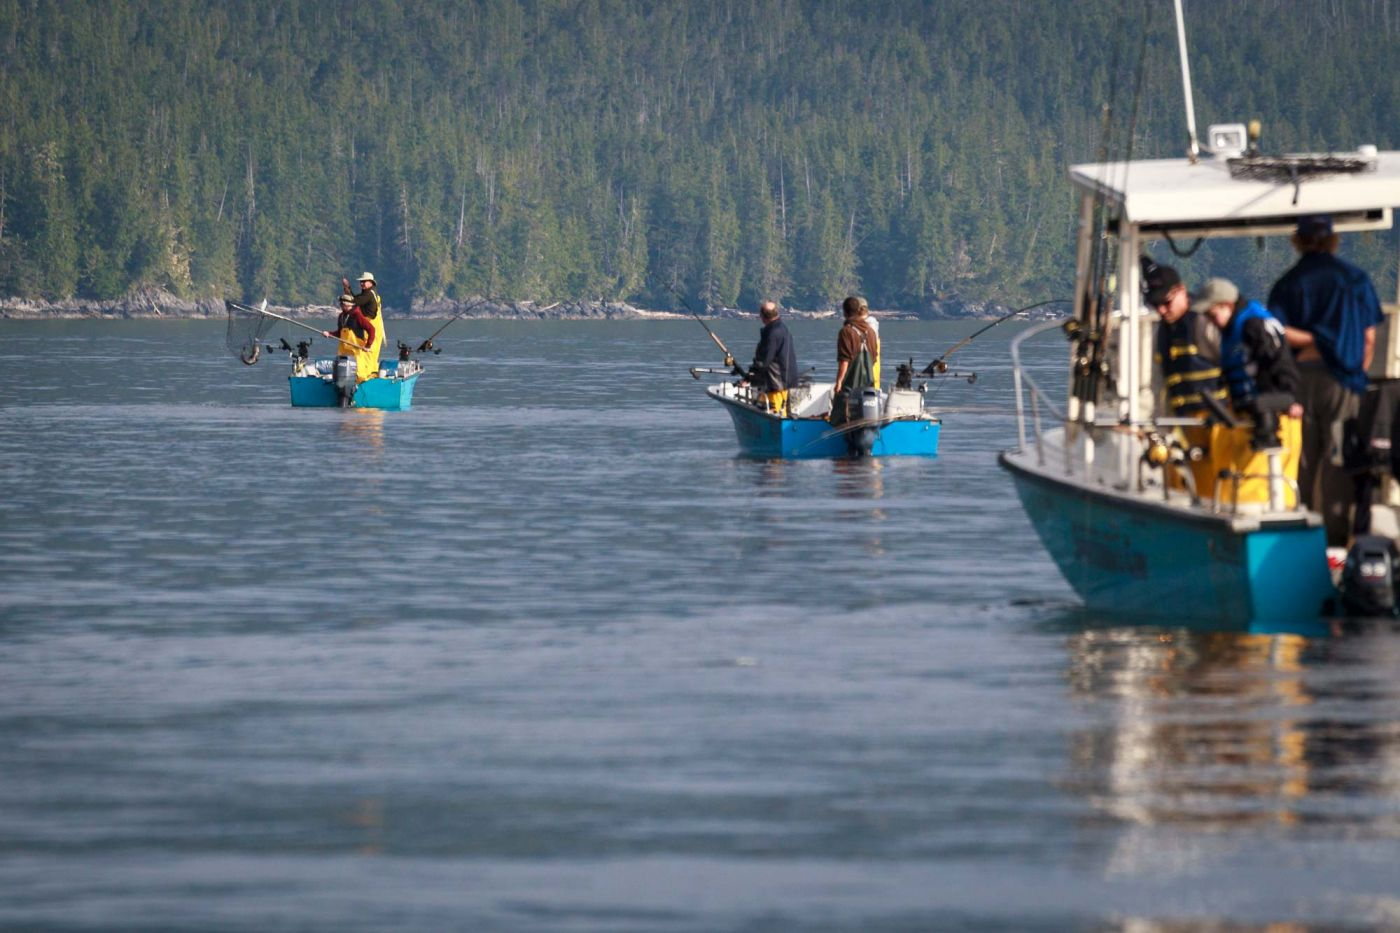 3 fishing boats each filled with guests of Rivers Inlet Sportsman's Club fishing lodge head out to the fishing grounds eager for a day of catching salmon